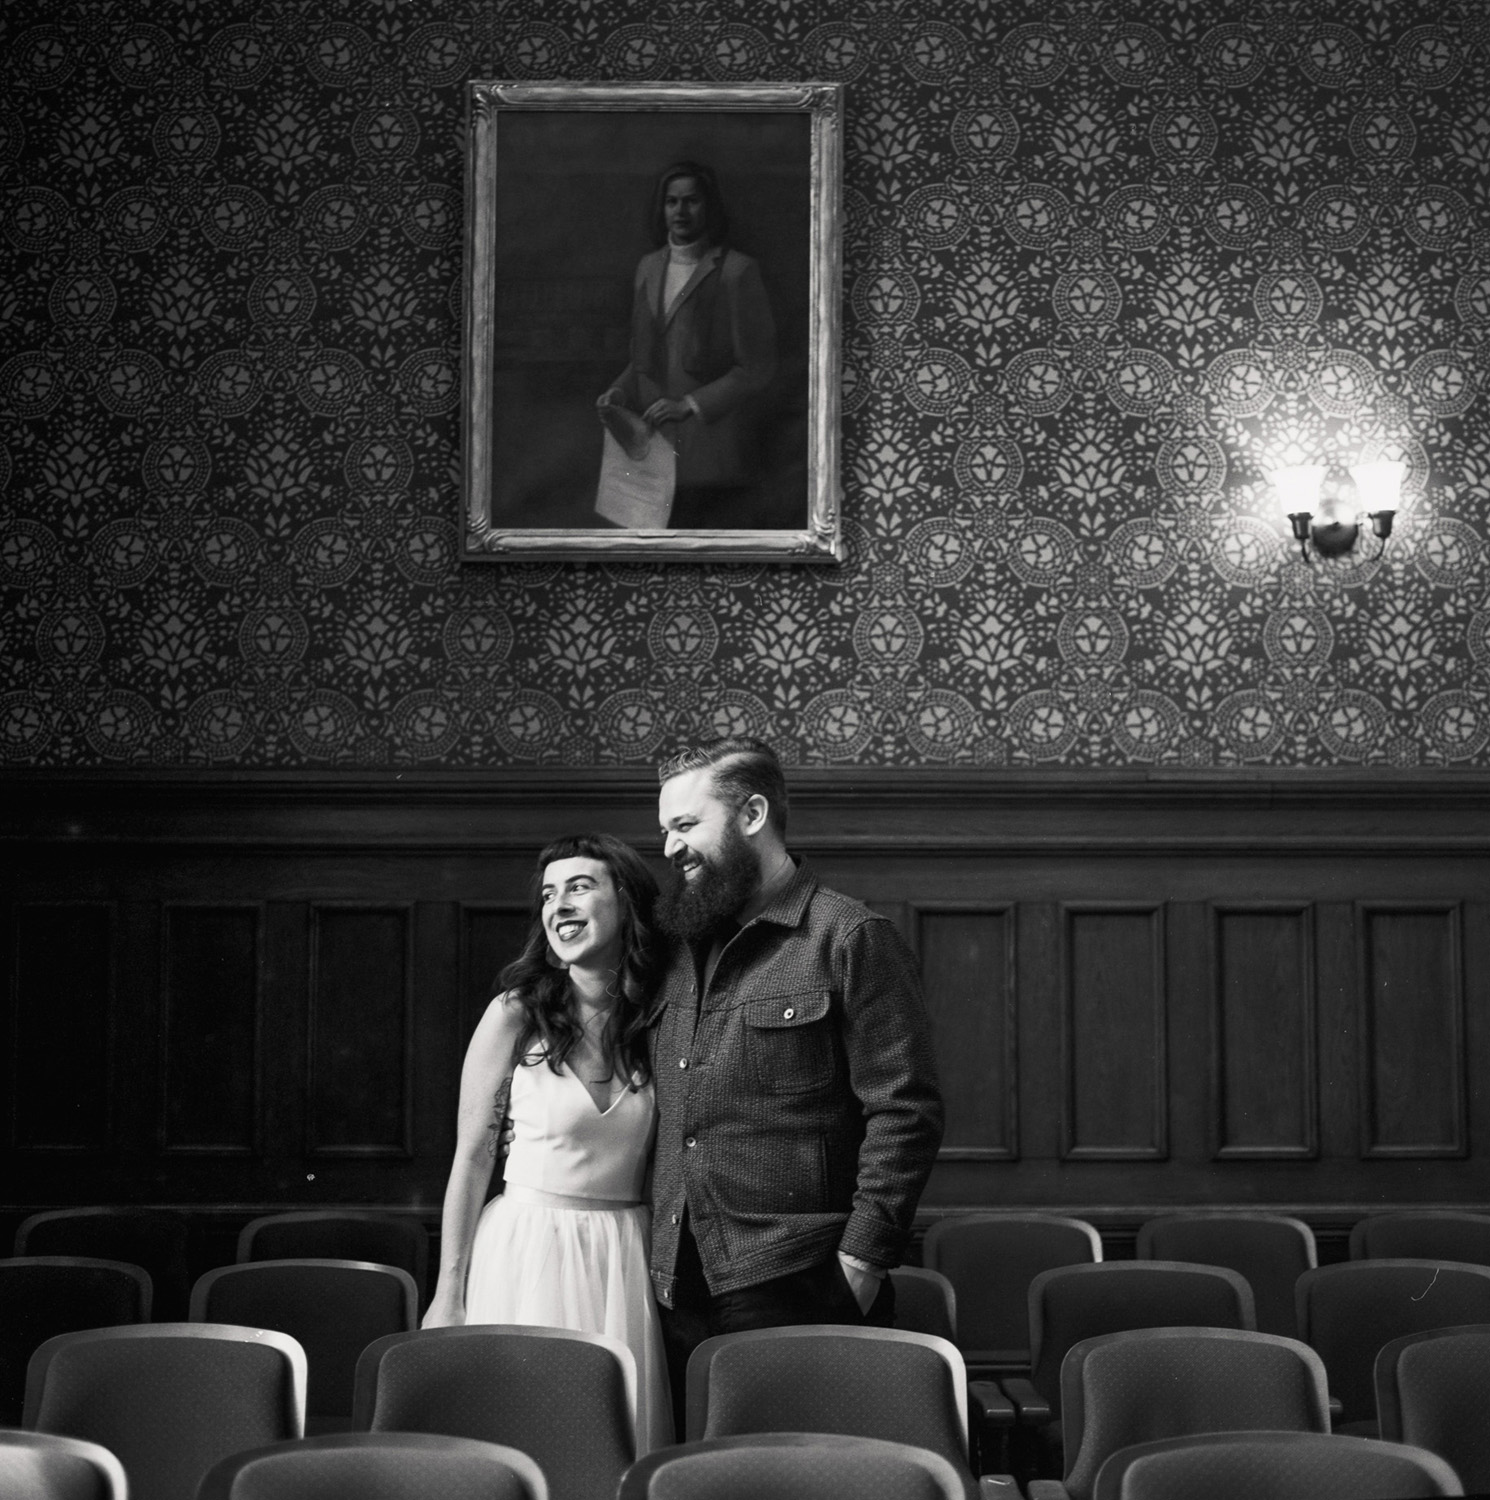 Spring_Cambridge_City_Hall_Wedding_Film_Photography_ 013.jpg